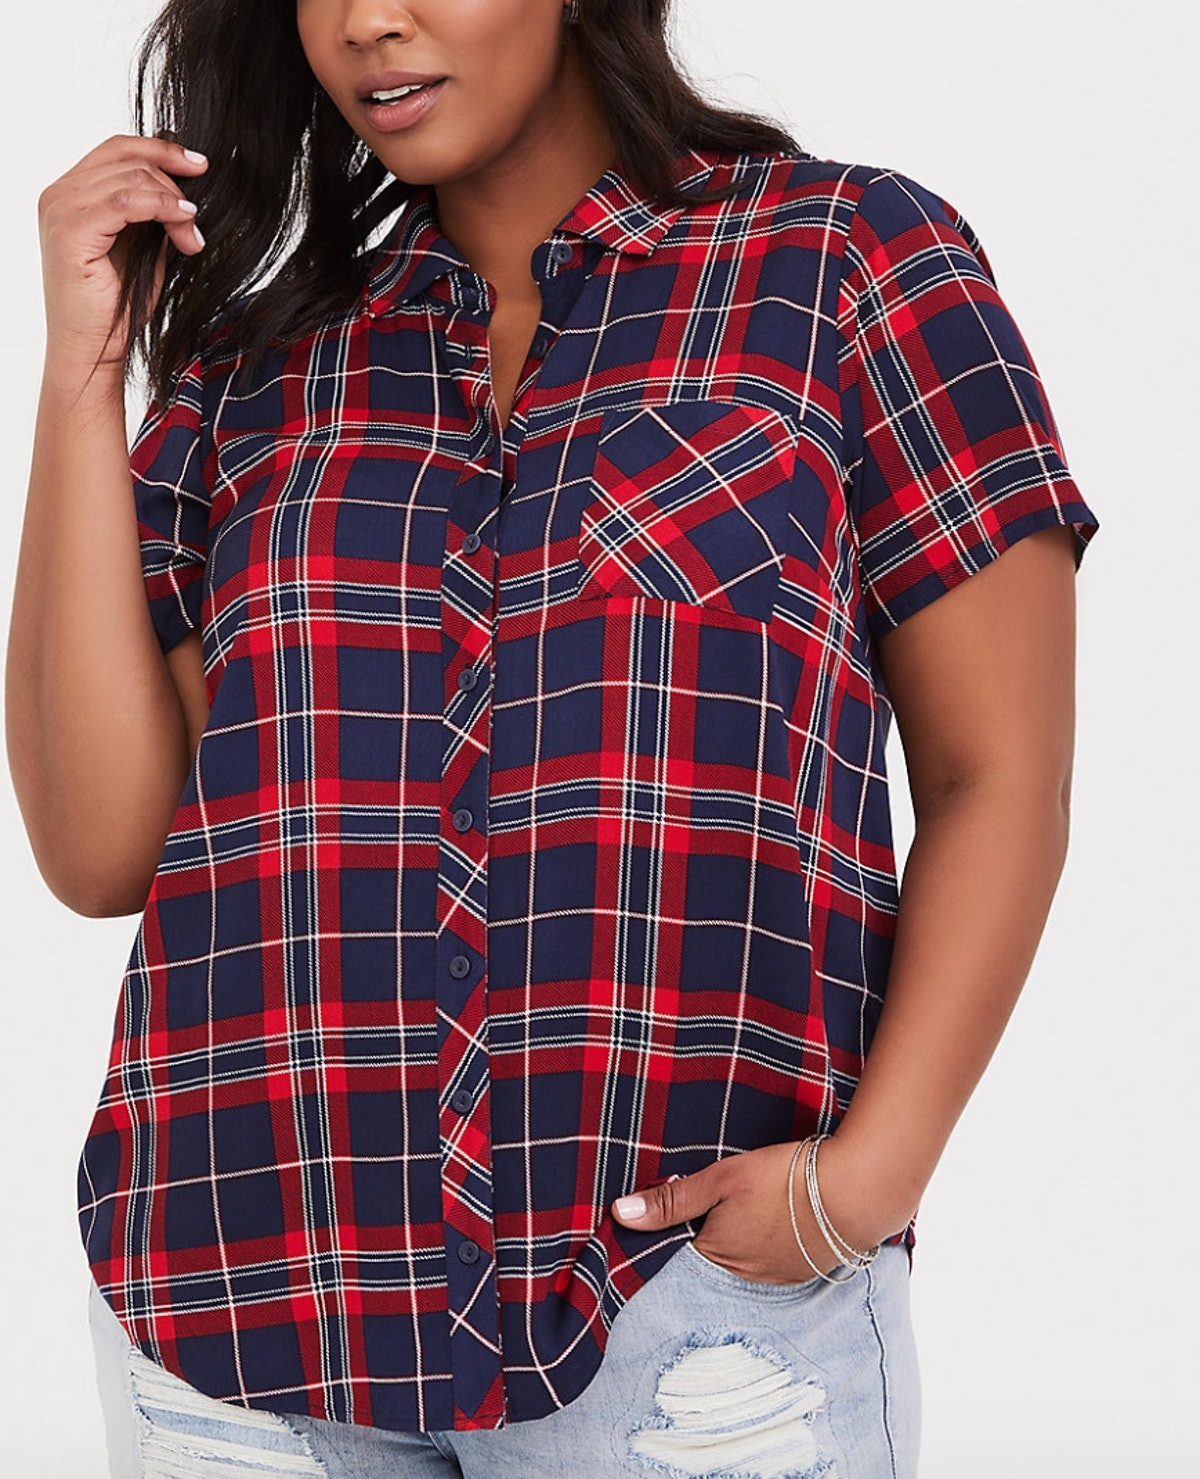 Red and Navy Plaid Challis Button-Down Shirt